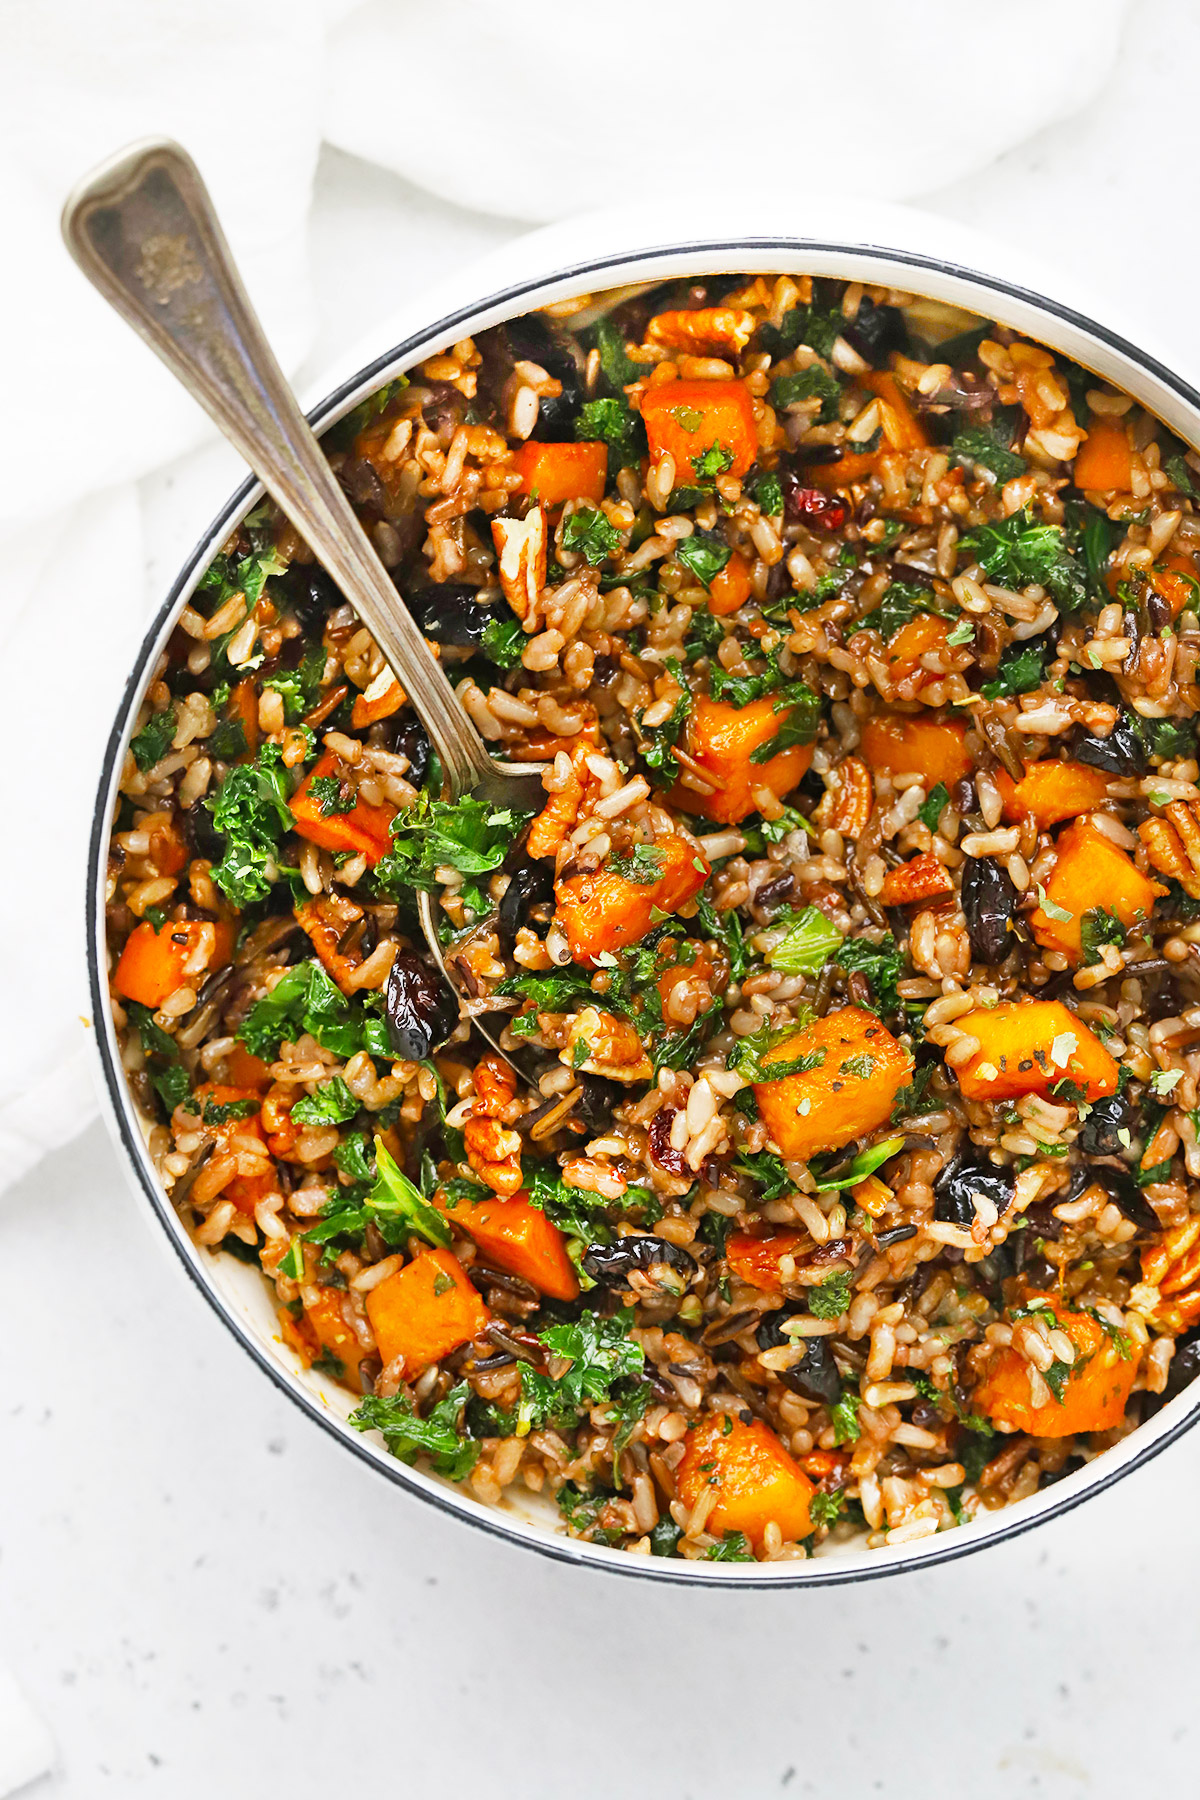 Overhead view of a saucepan of Wild Rice Pilaf with Butternut Squash, Kale, Dried Cranberries, and Pecans